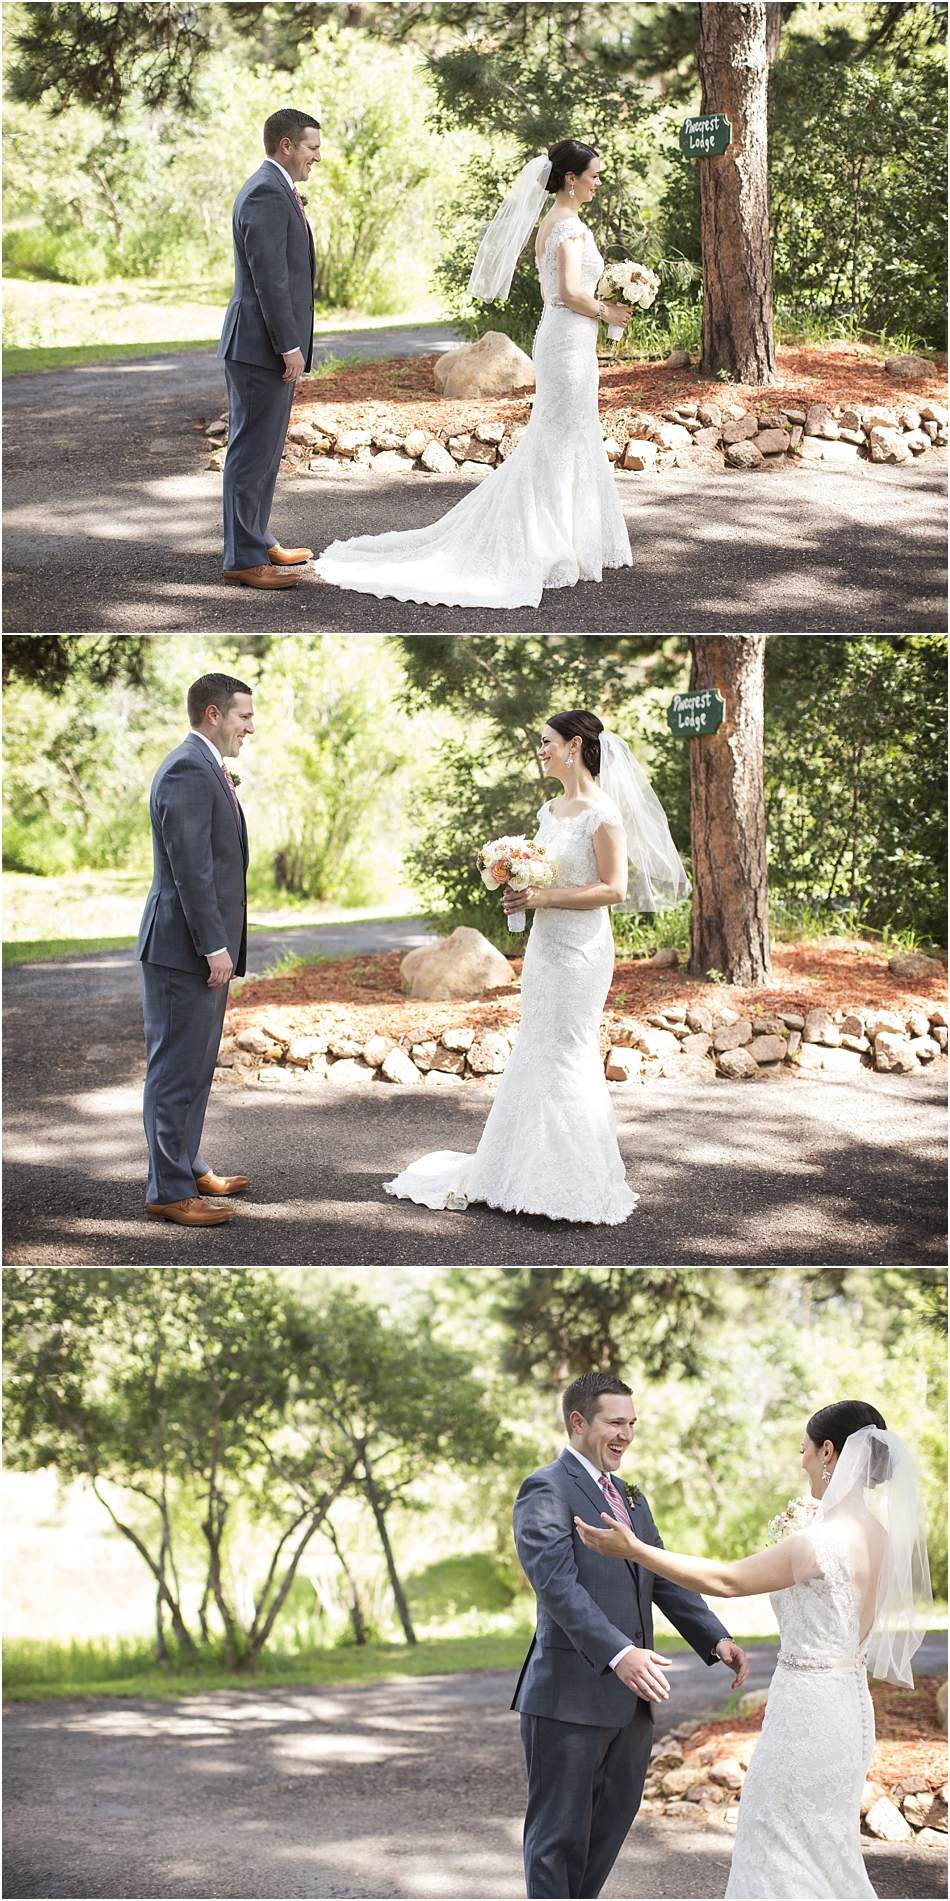 Pinecrest Event Center Wedding| Elizabeth and Caleb's Wedding_0031